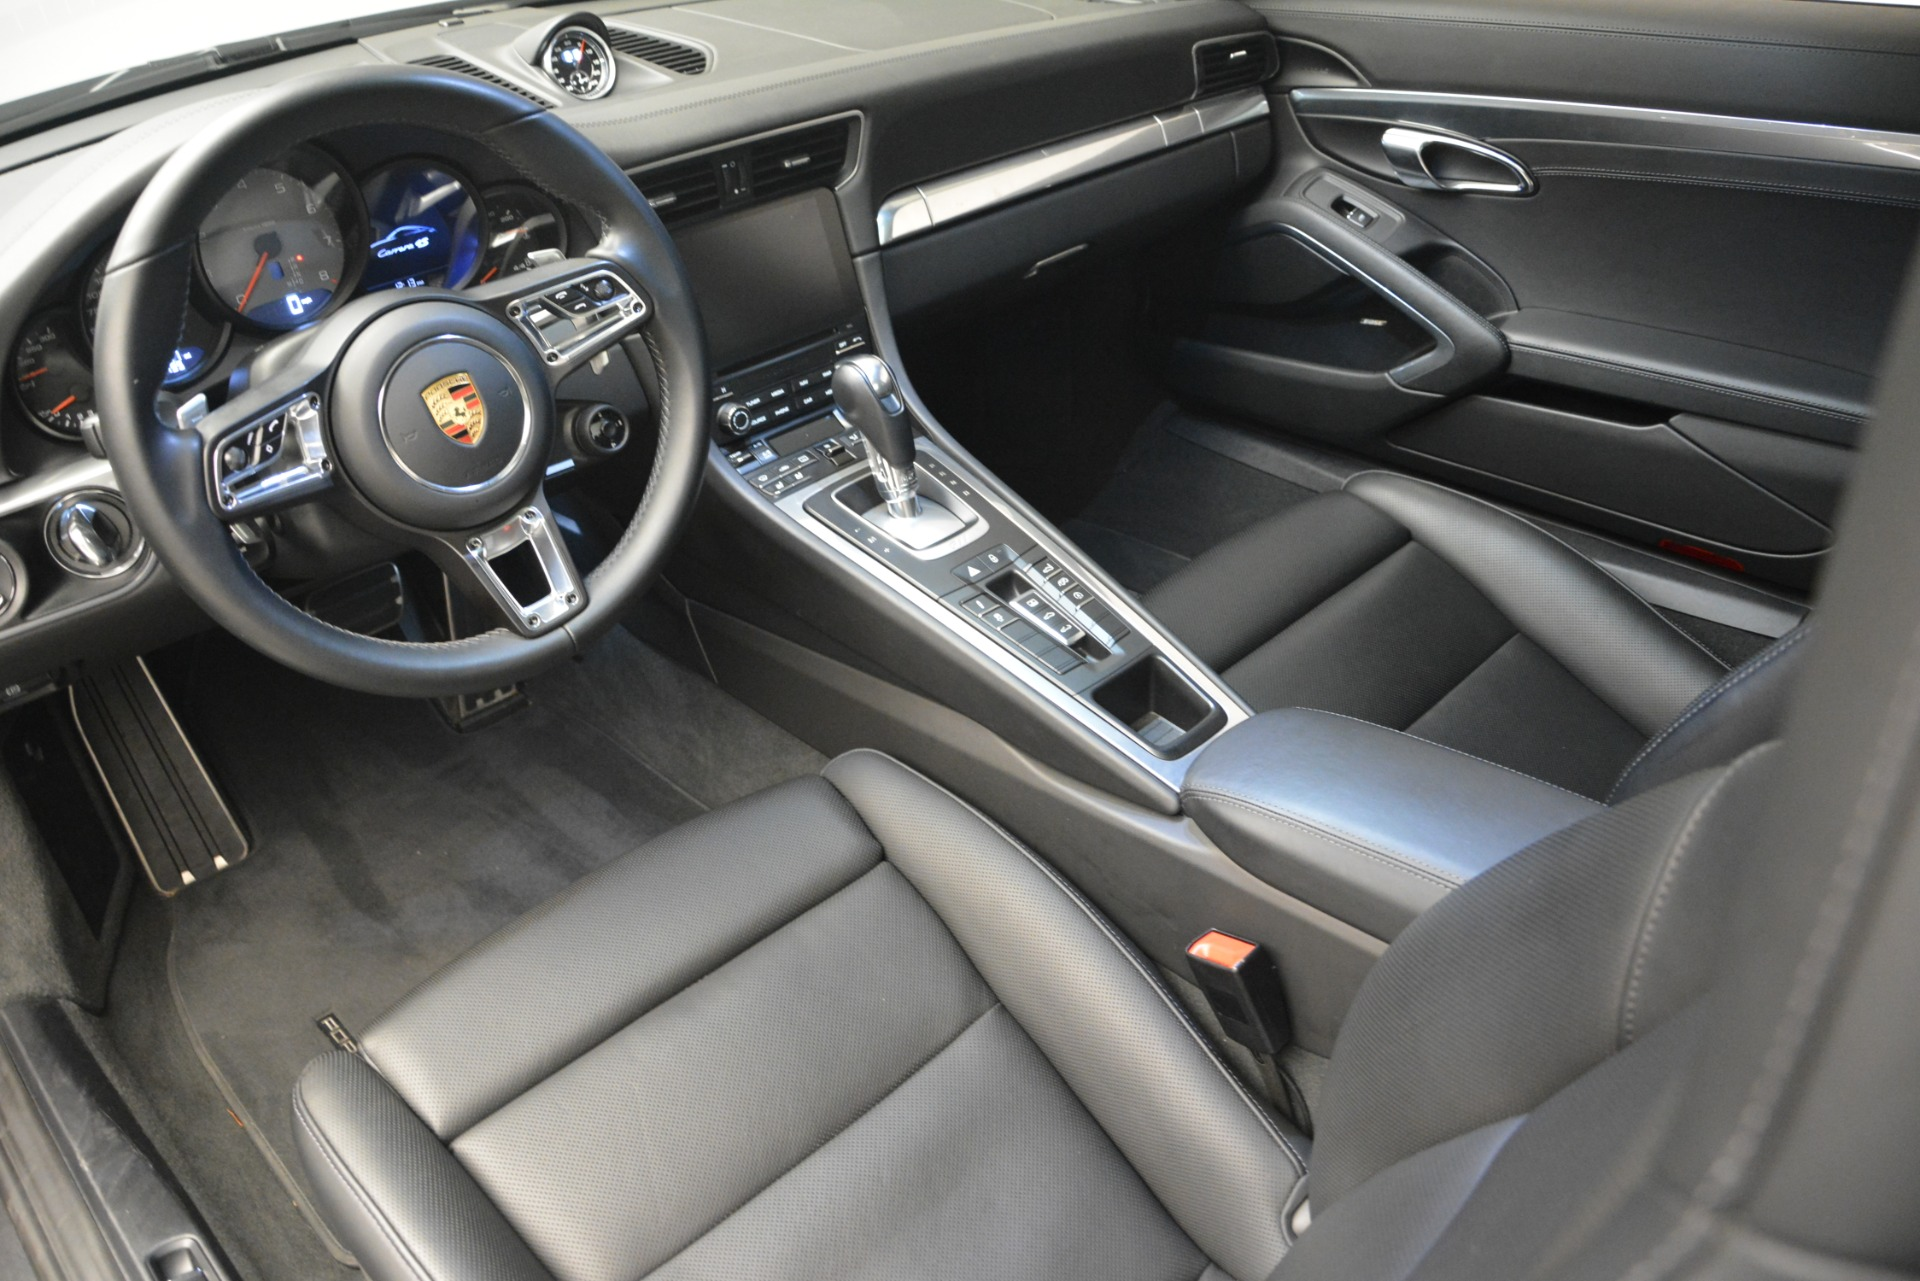 Used 2017 Porsche 911 Carrera 4S For Sale In Westport, CT 2887_p14